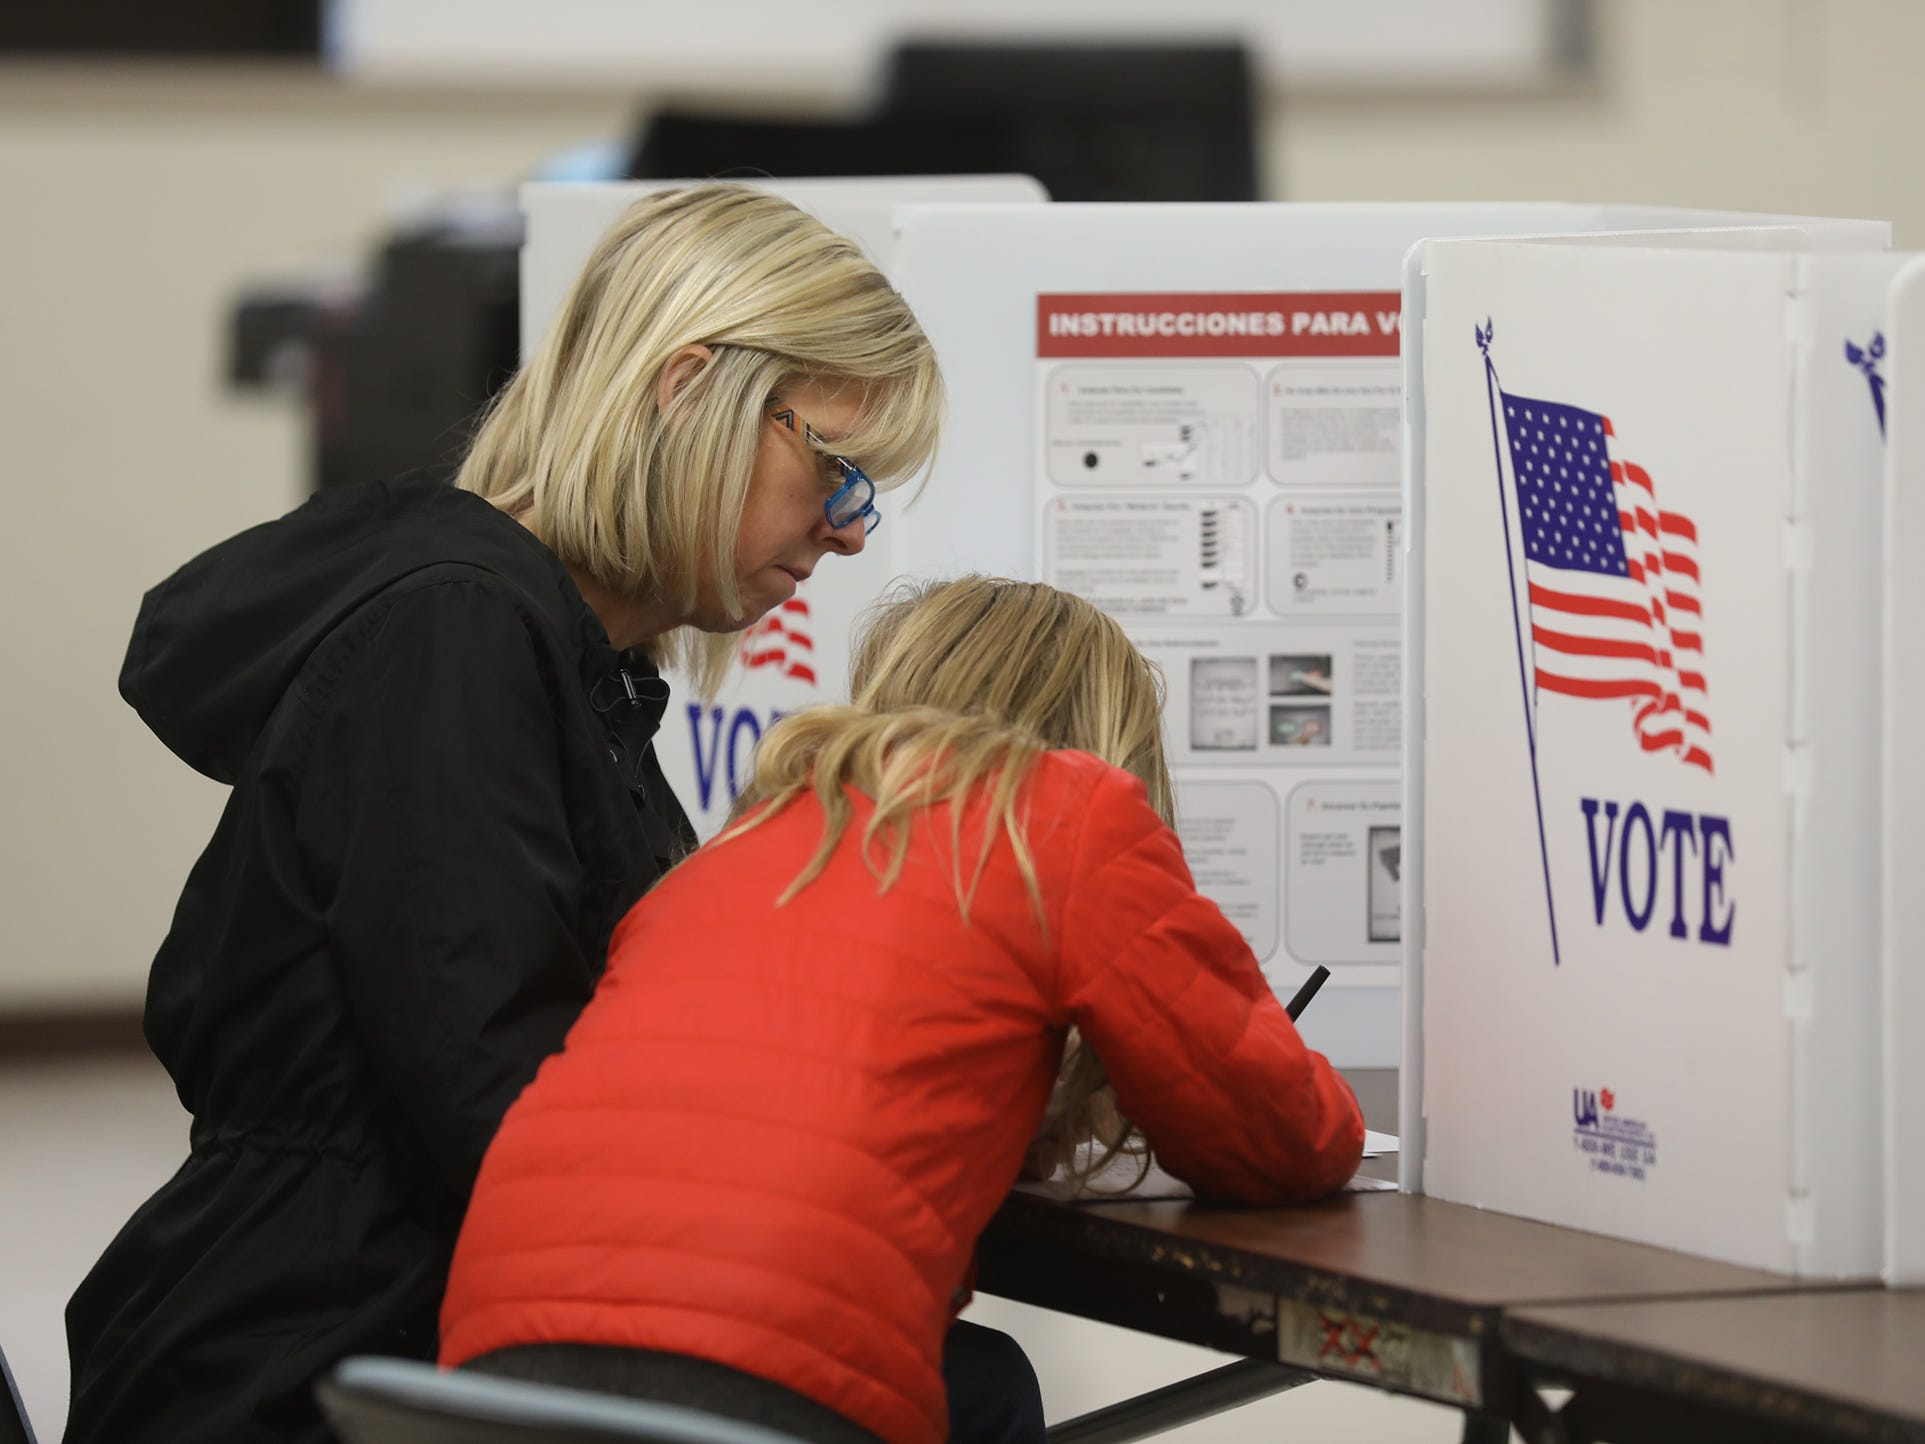 Aubrin Crowley, 9, helps her mother Michelle, vote at the Penfield Community Center.  She filled in the ballot at the spots her mother pointed at.